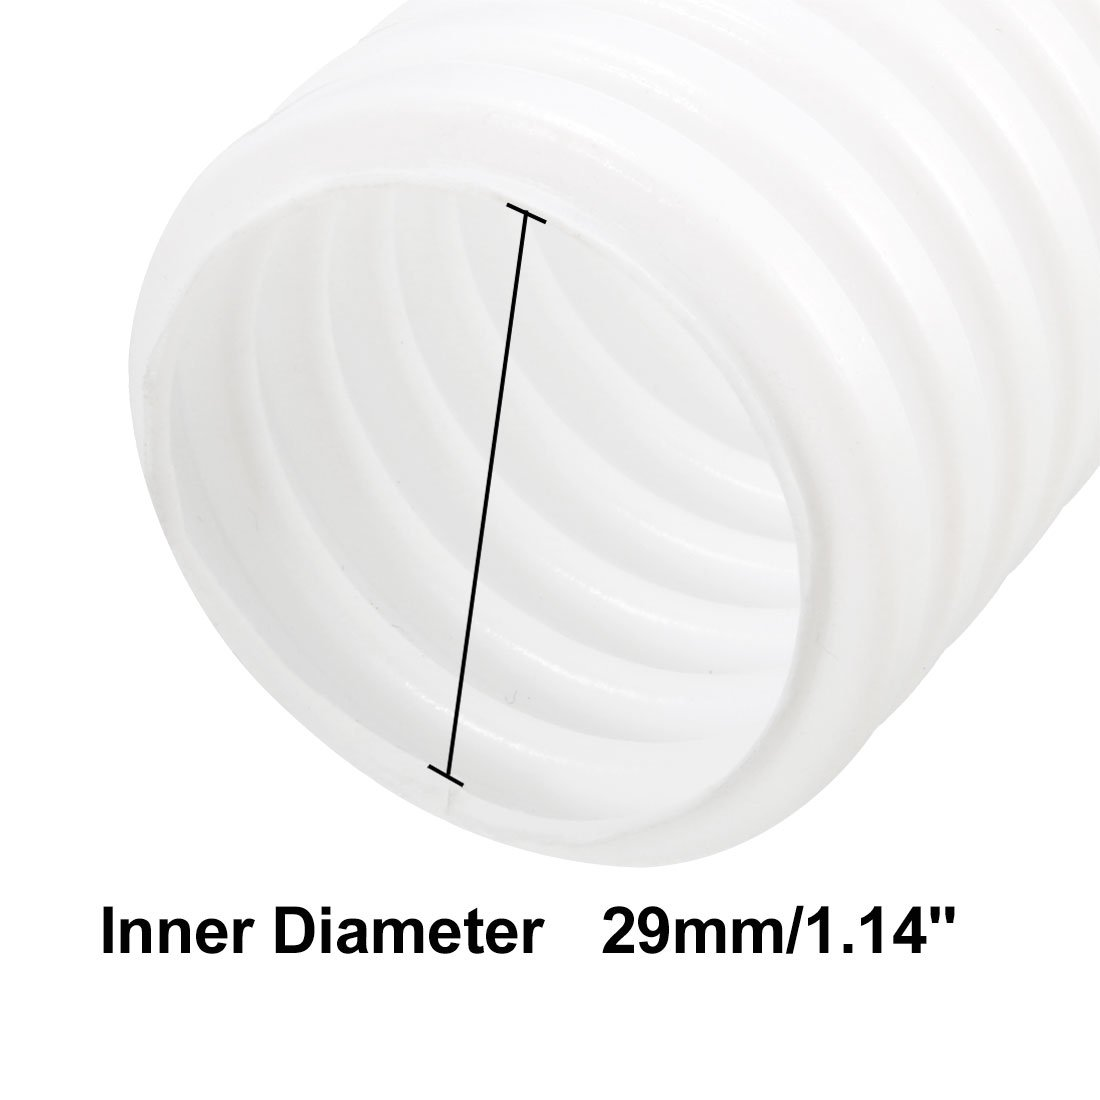 uxcell 2M Length 34.5mm Outside Dia Corrugated Bellow Conduit Tube for Electric Wiring a18040300ux0150